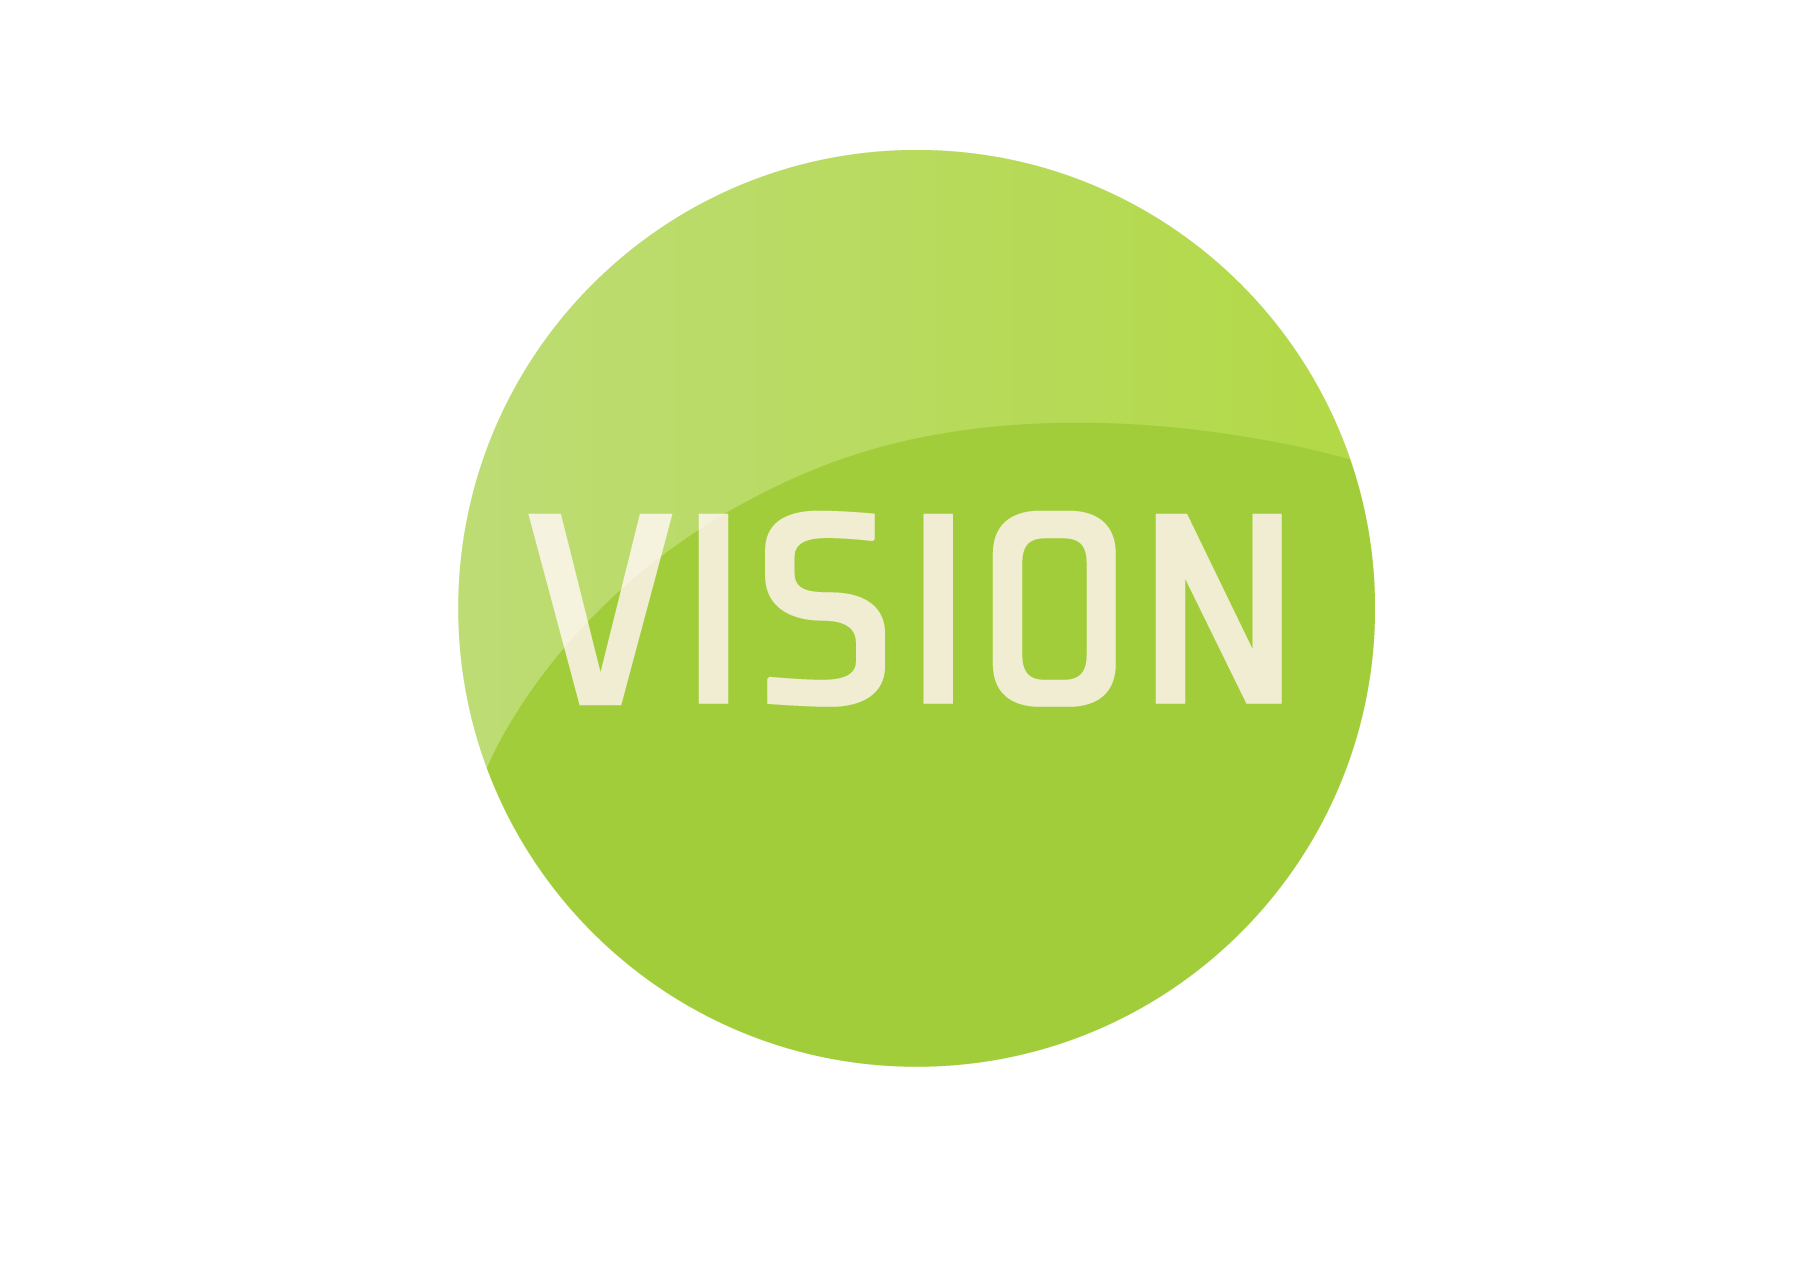 VISION ICON-01.png